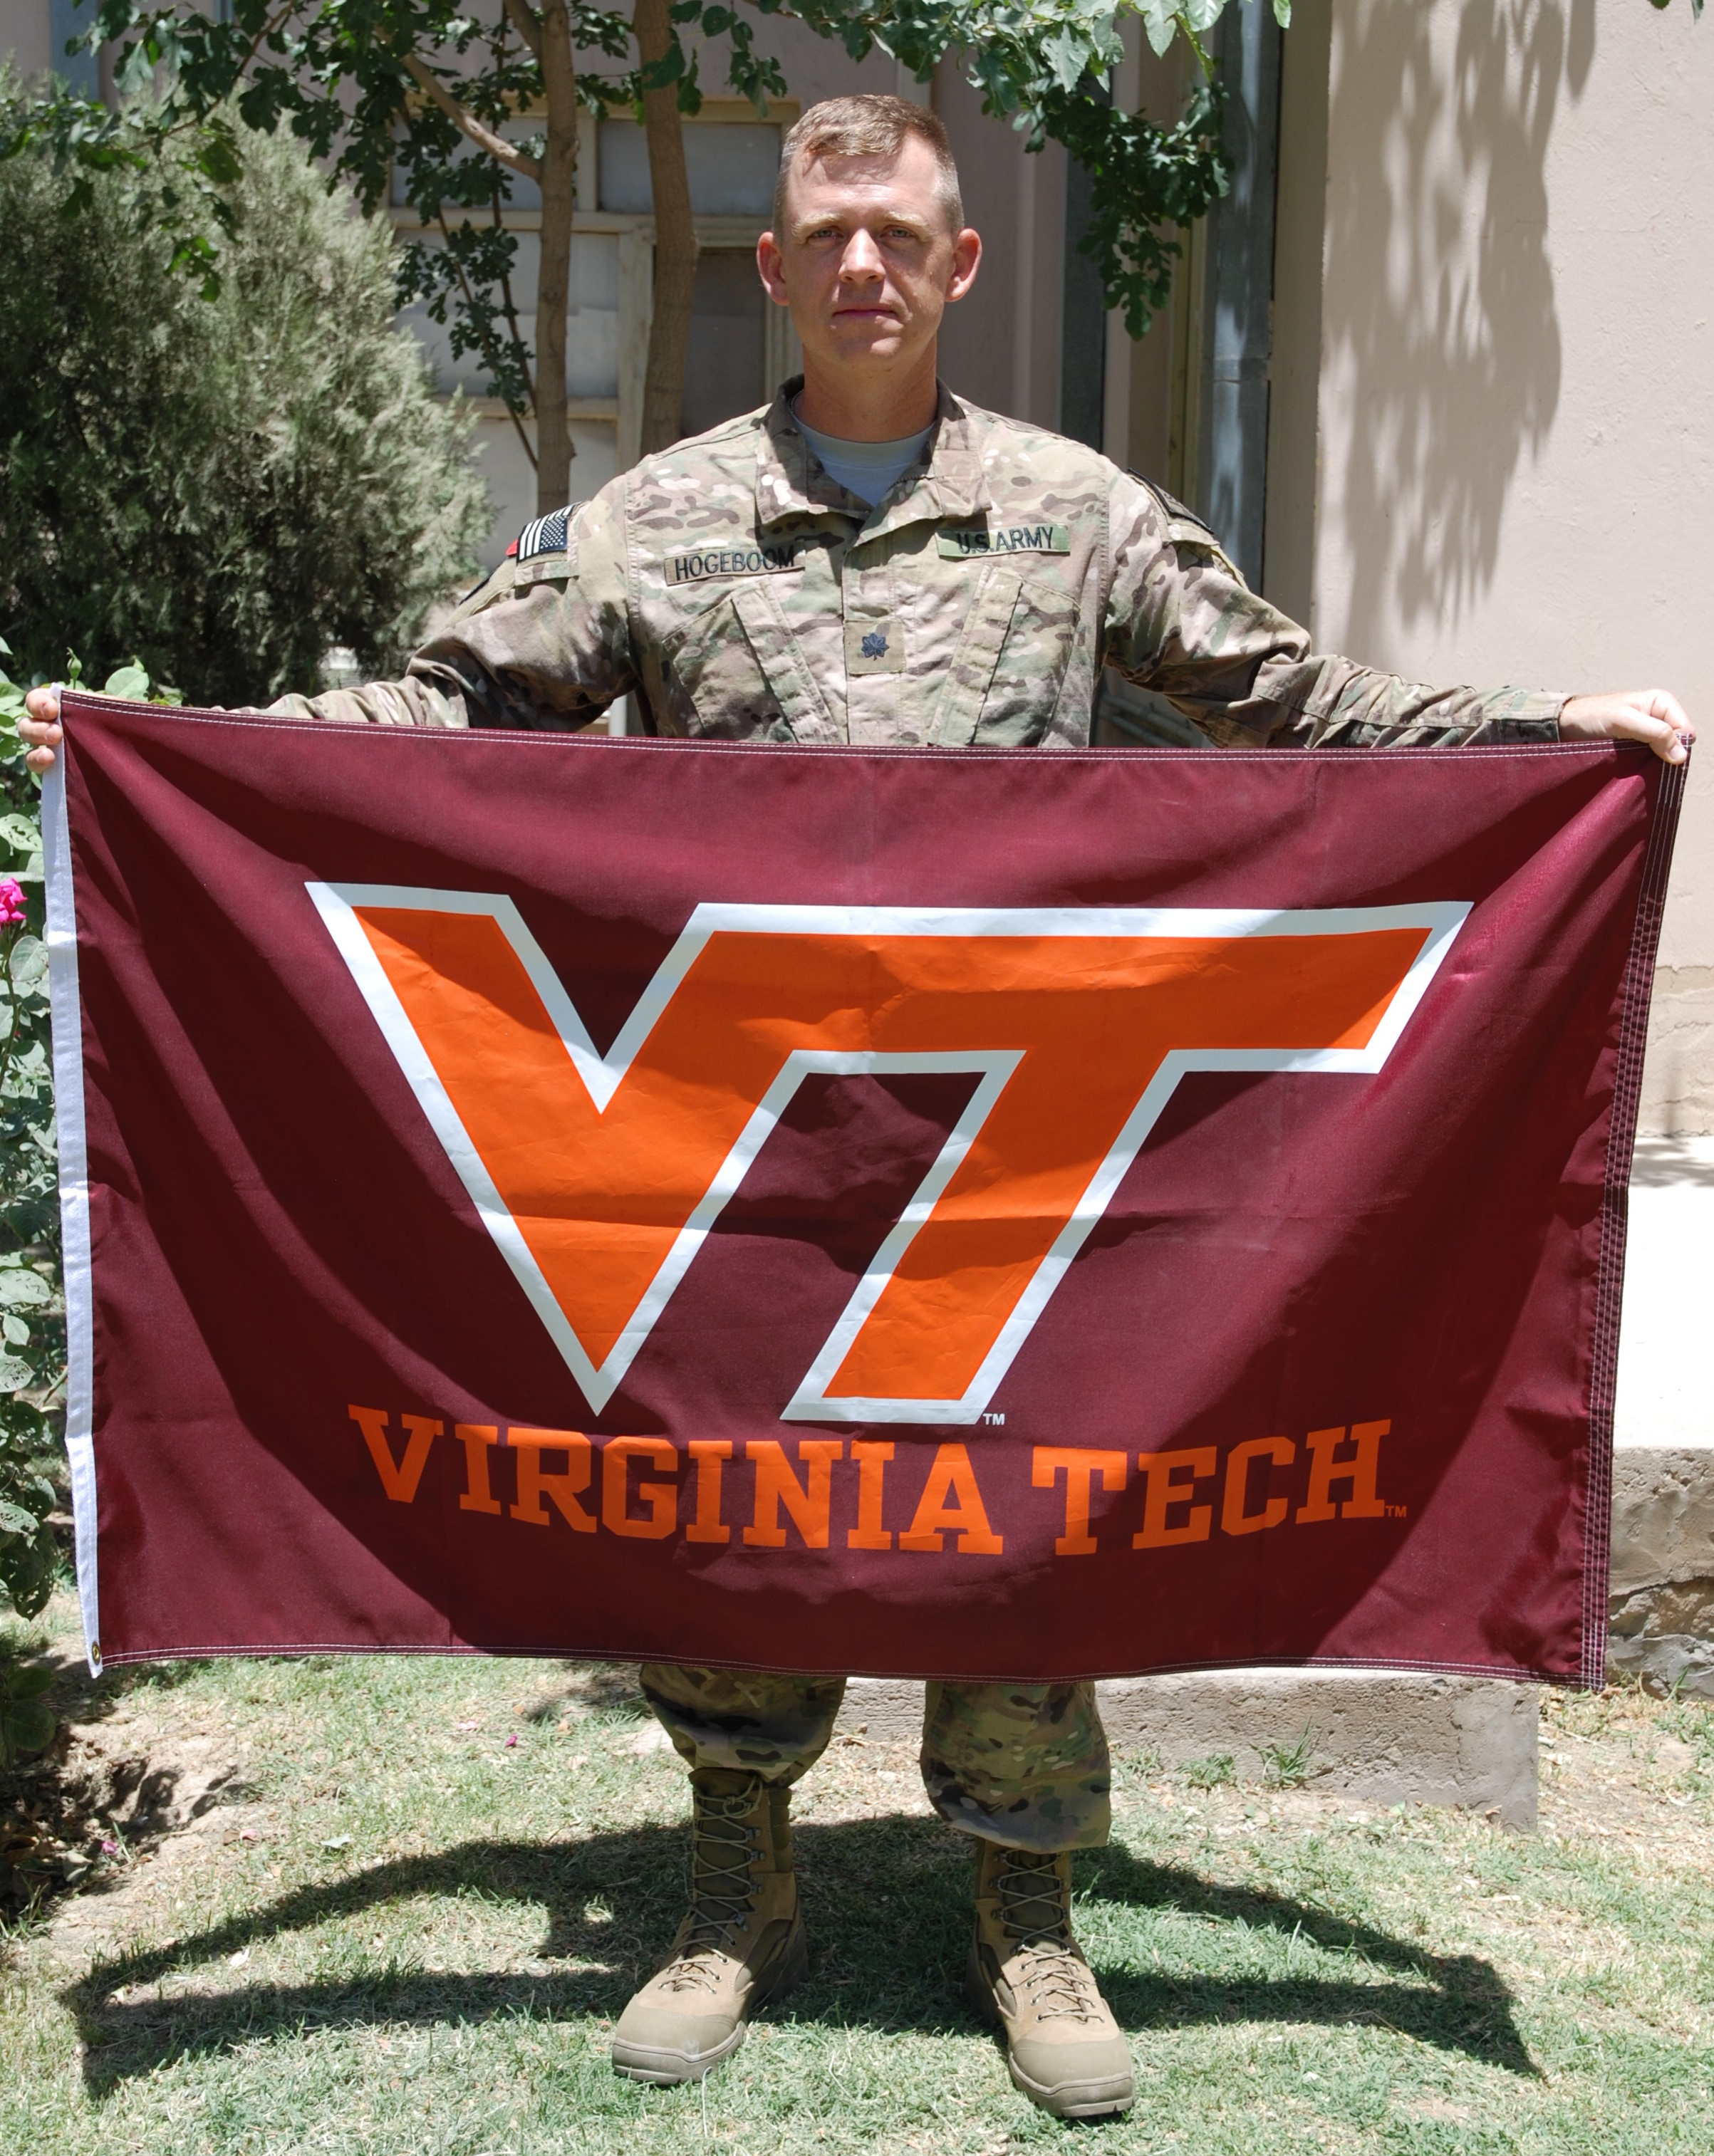 Lt. Col. Patrick Hogeboom, U.S. Army, Virginia Tech Corps of Cadets Class of 1994 holding the VT flag